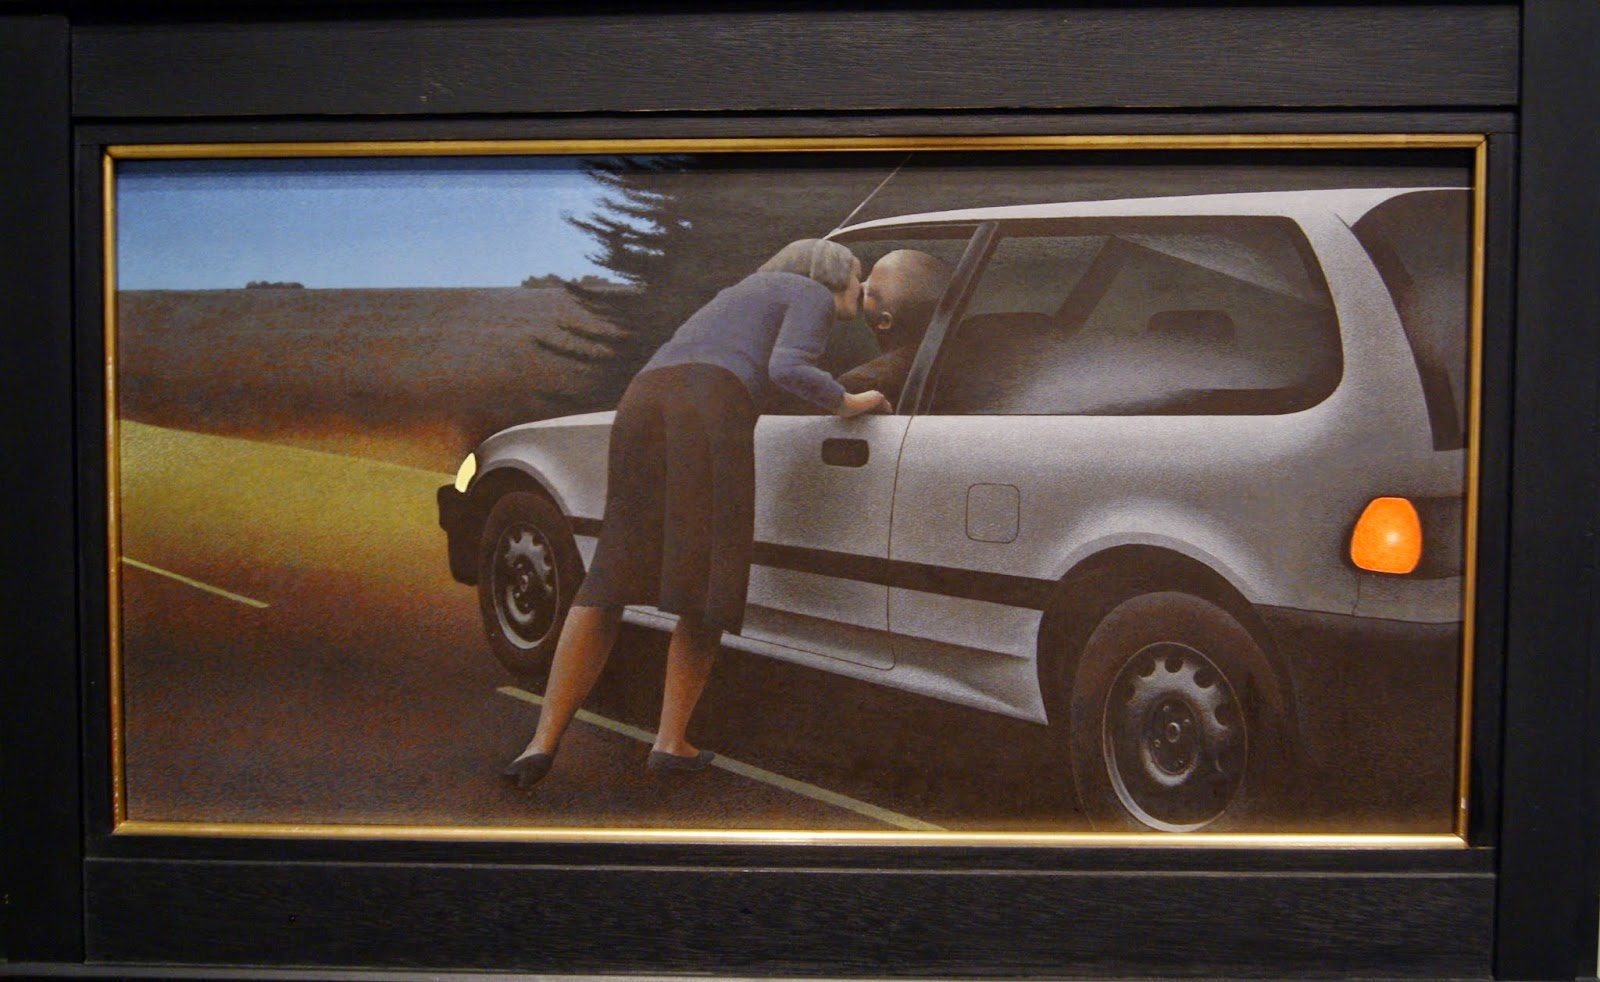 Alex Colville Exhibit at Art Gallery of Ontario in Toronto,Kiss With Honda,1989, paintings, art, artmatters, culture,ontario, Canadian Artist, Painter, Canada